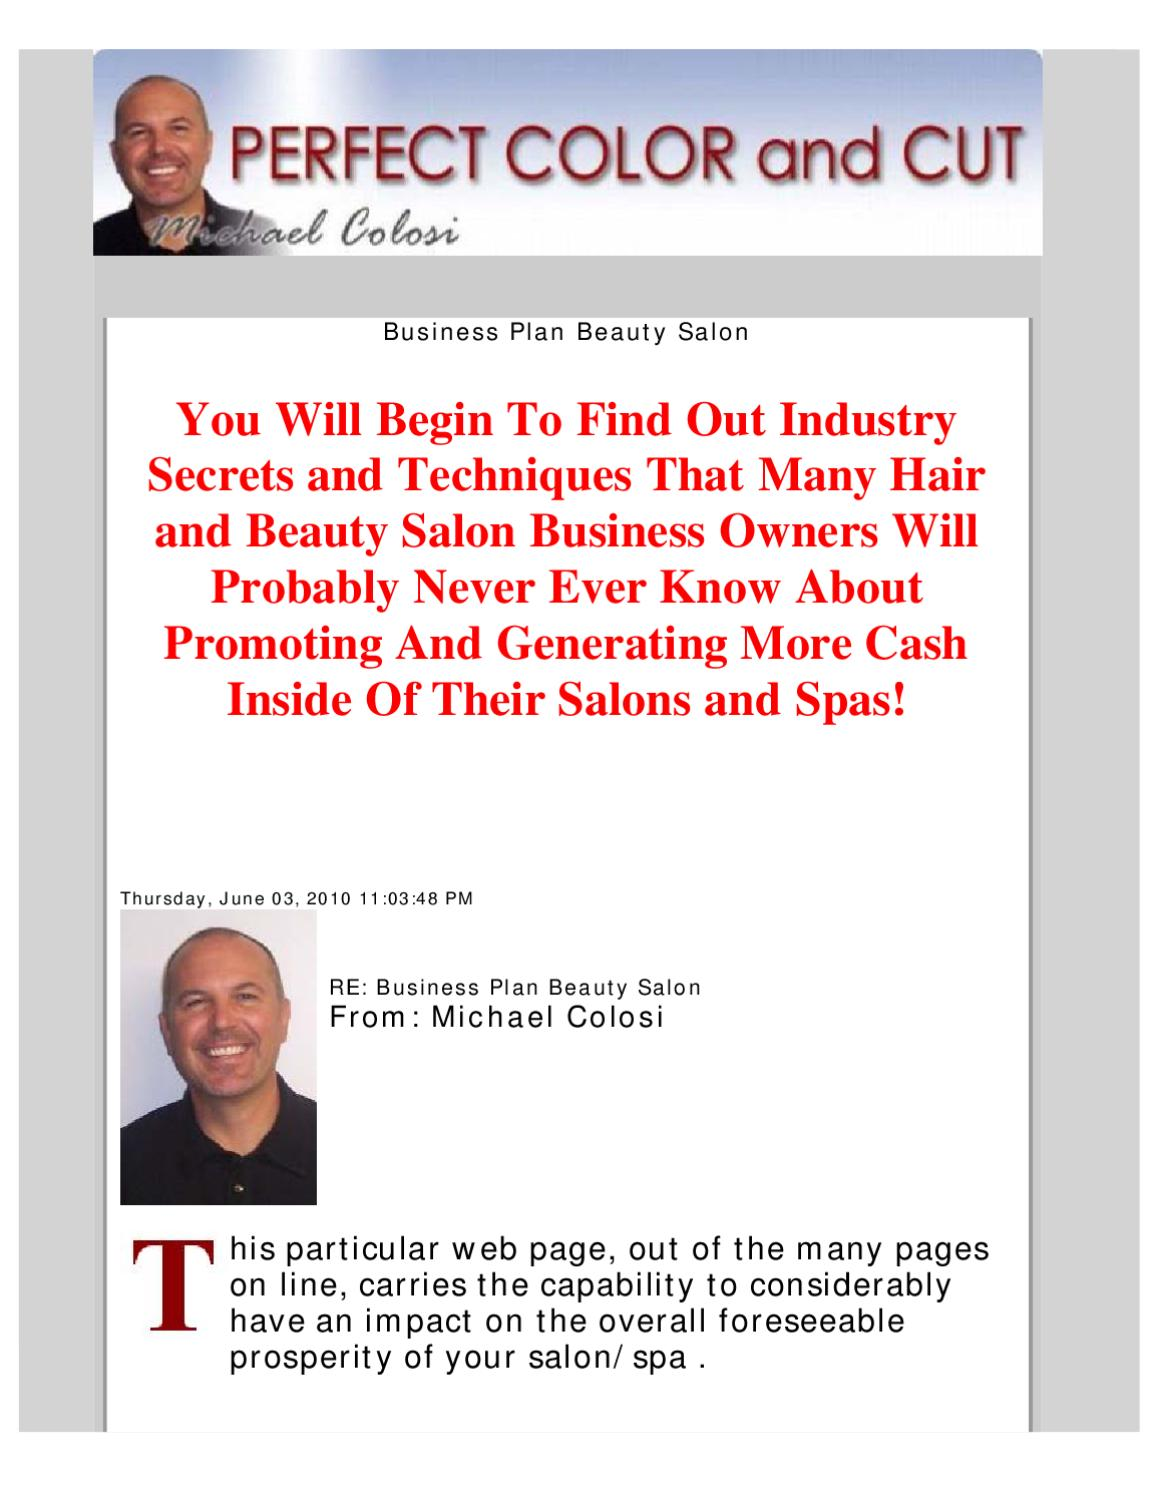 Business plan beauty salon by andrew s issuu for A beauty salon business plan